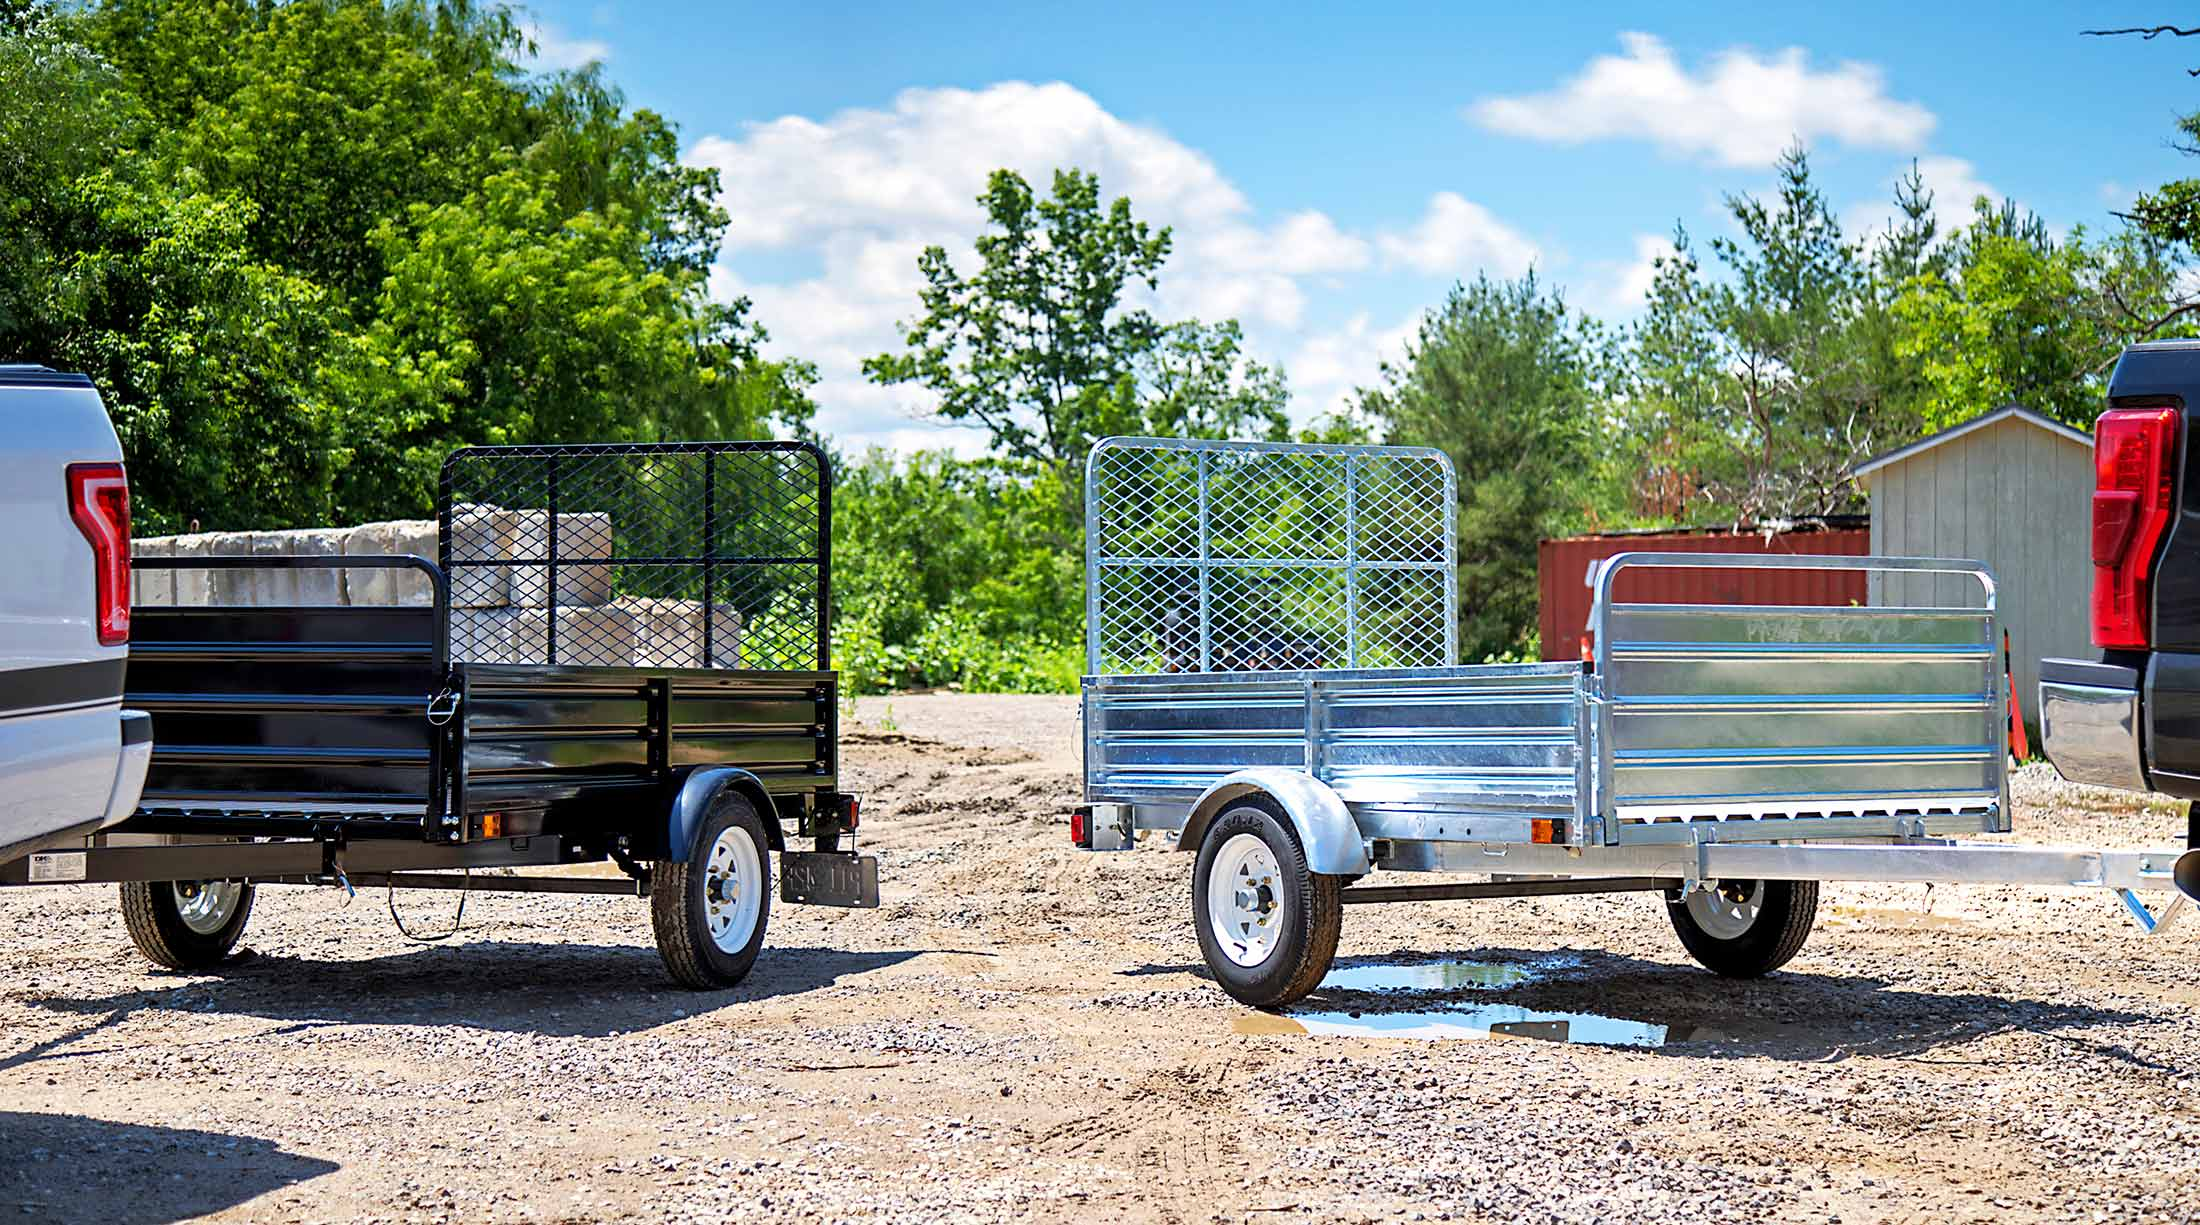 DK2 TRAILERS - FOR THE LONG HAUL